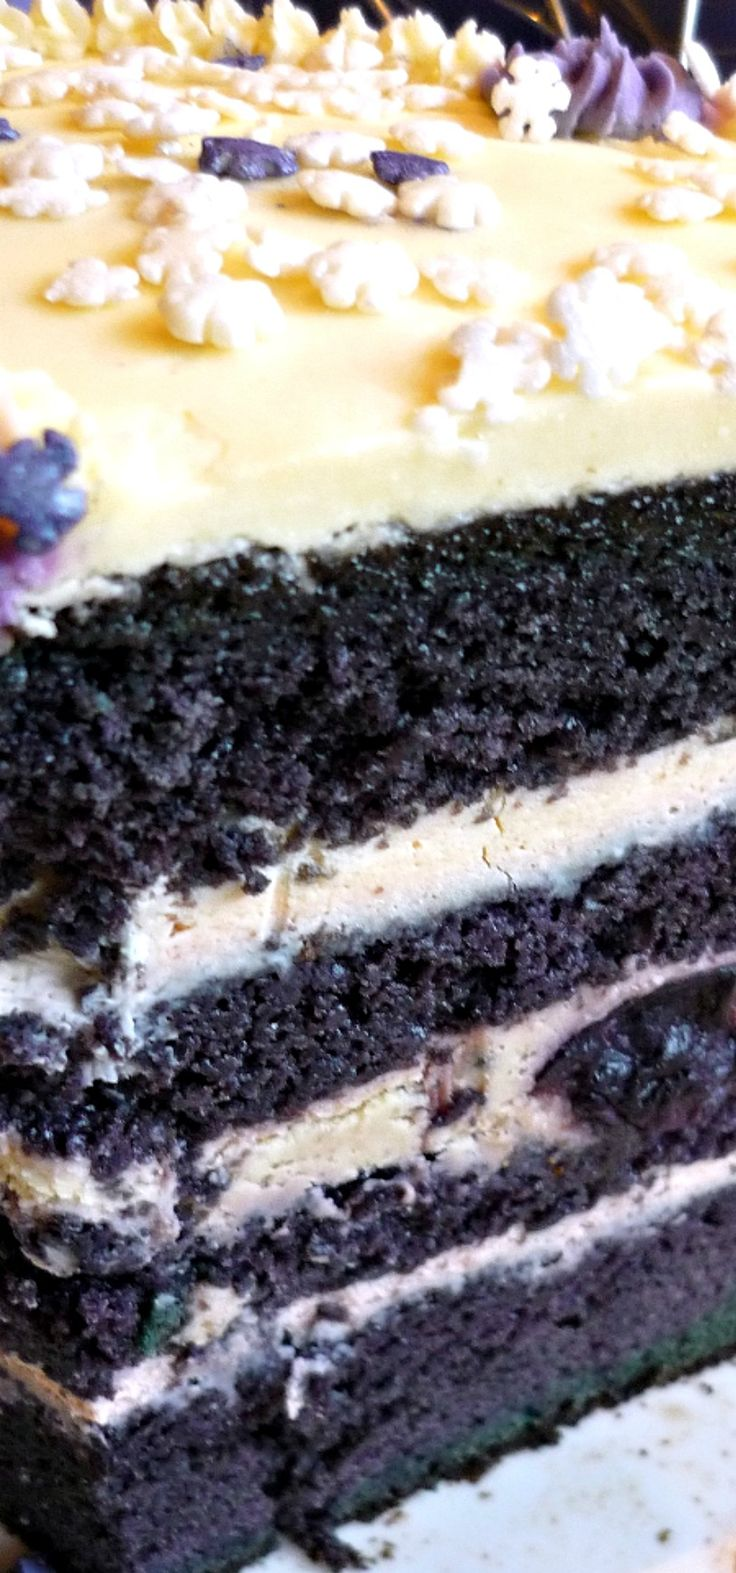 Blueberry Velvet Cake with White Chocolate Cheesecake Icing Recipe.....why isn't this in my mouth already